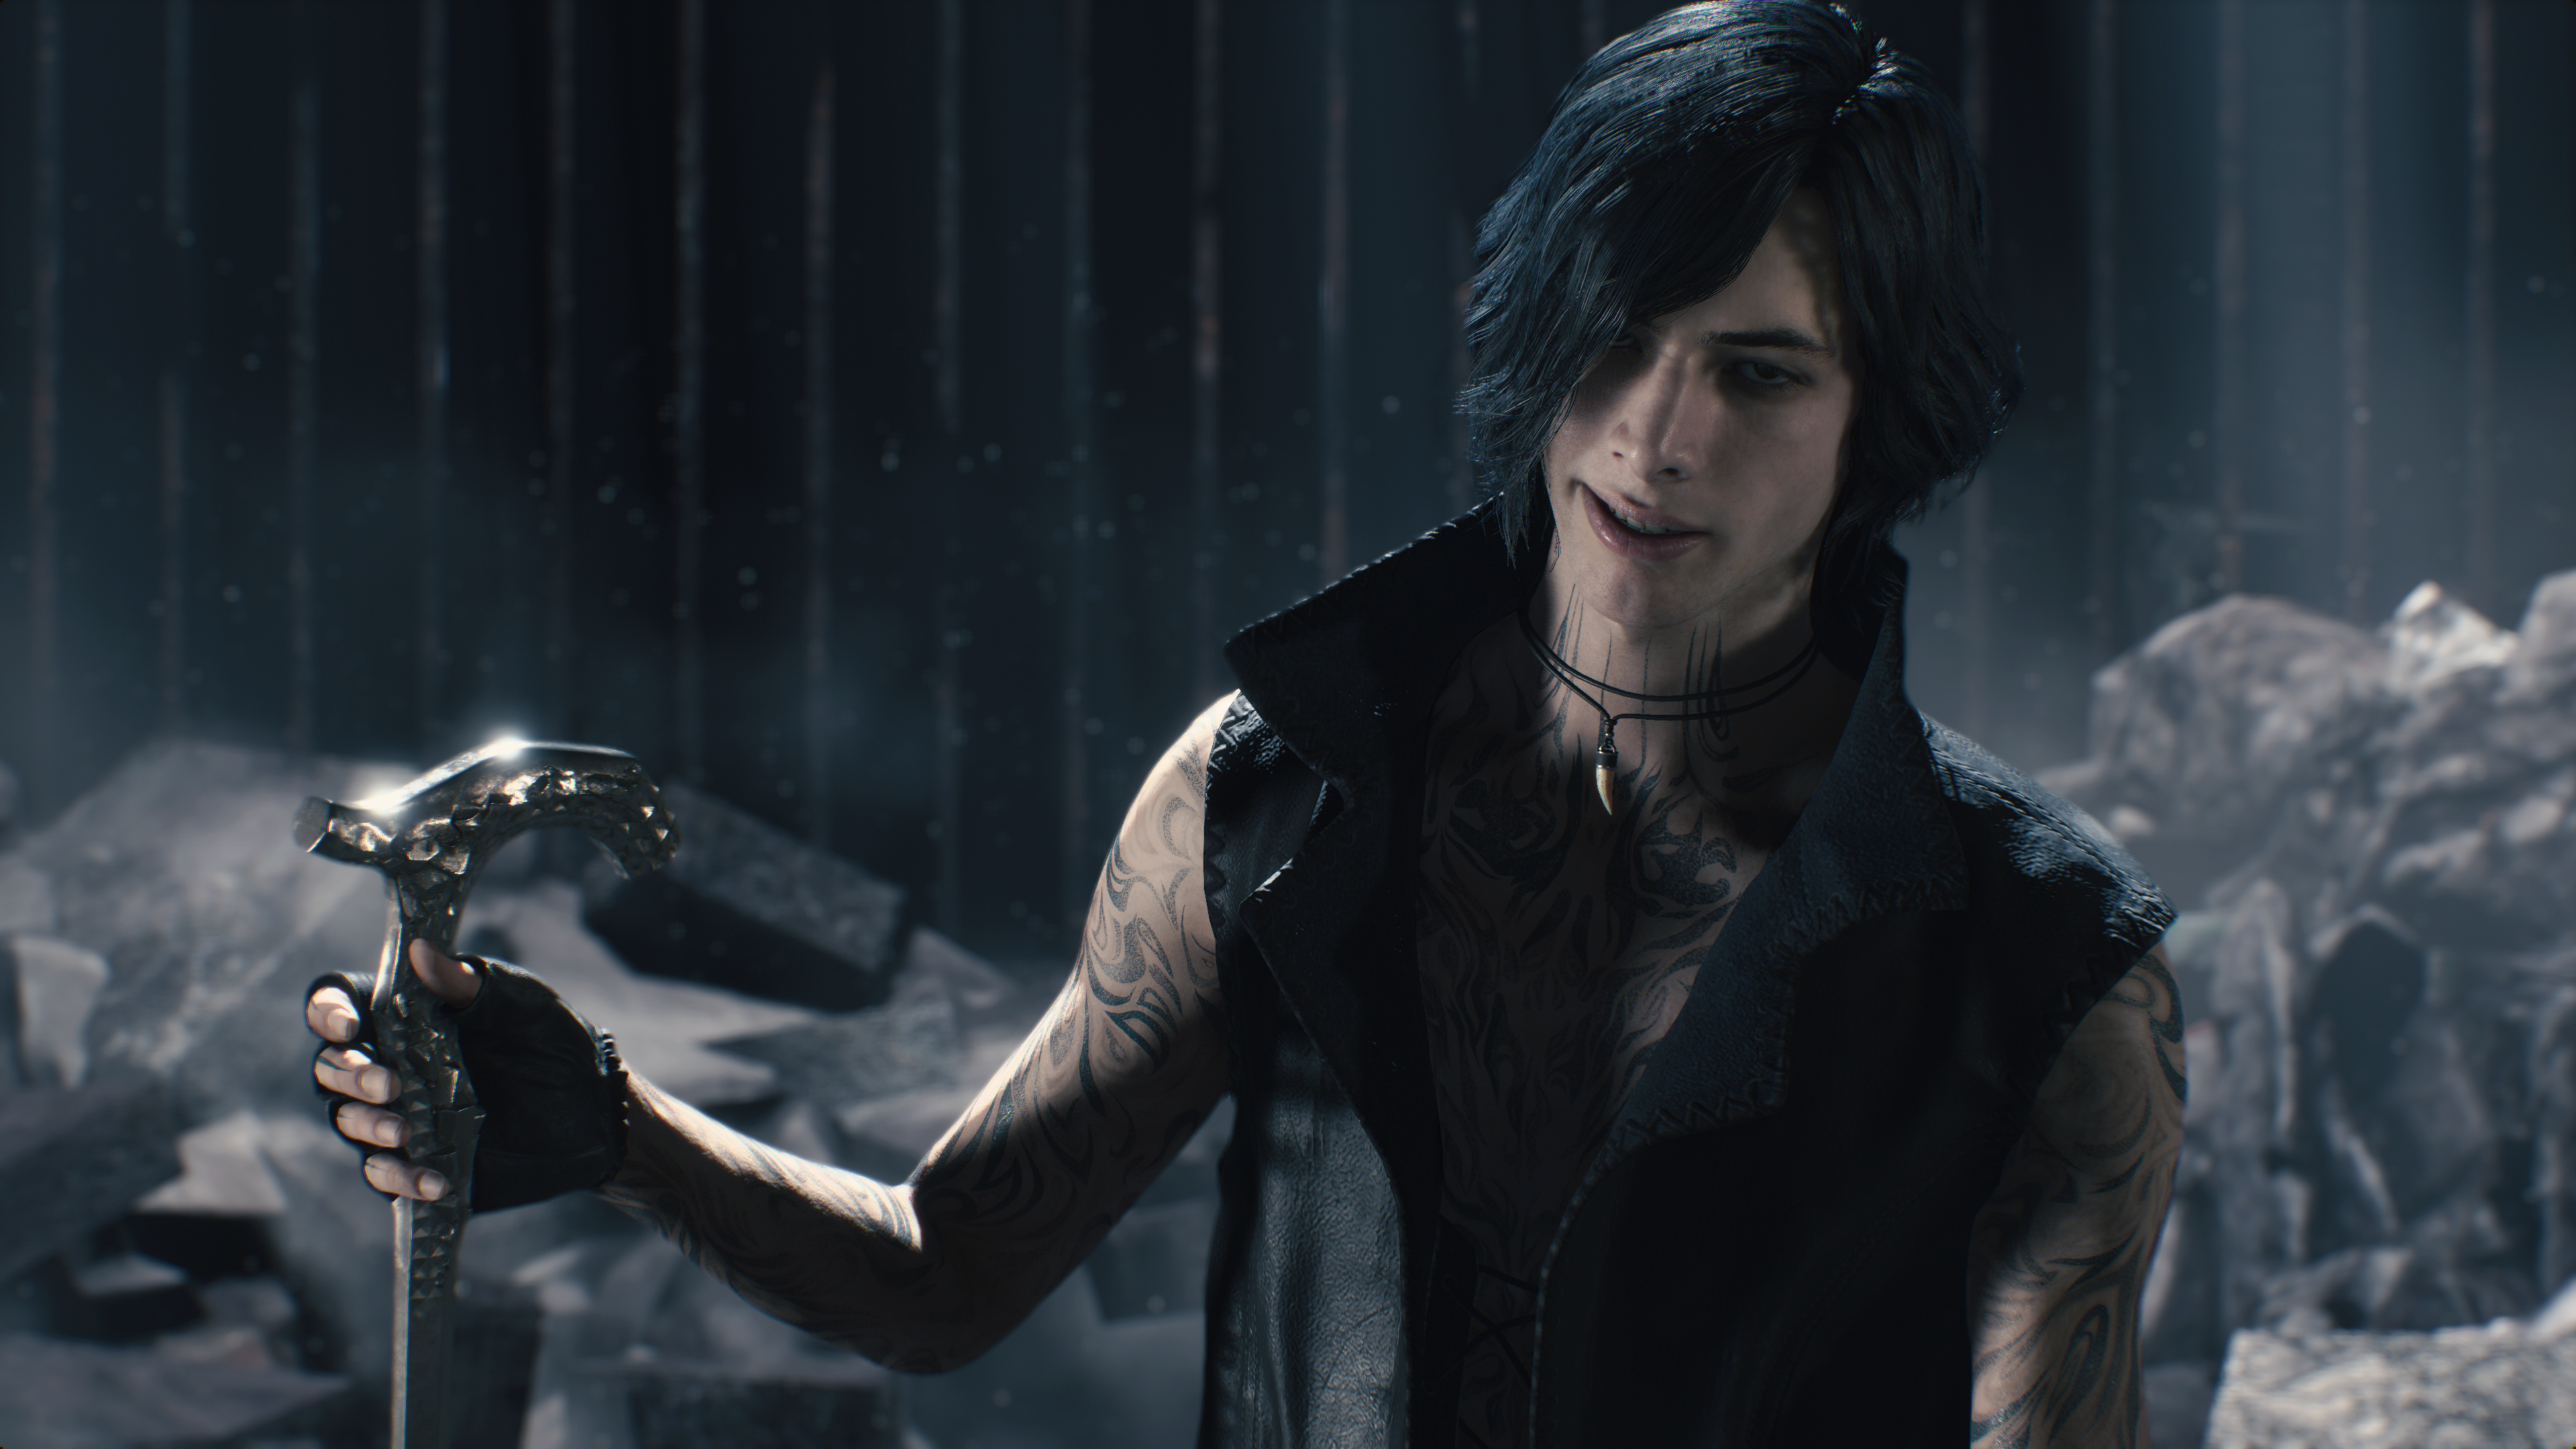 Devil May Cry 5 V 4k Ultra Hd Wallpaper Background Image